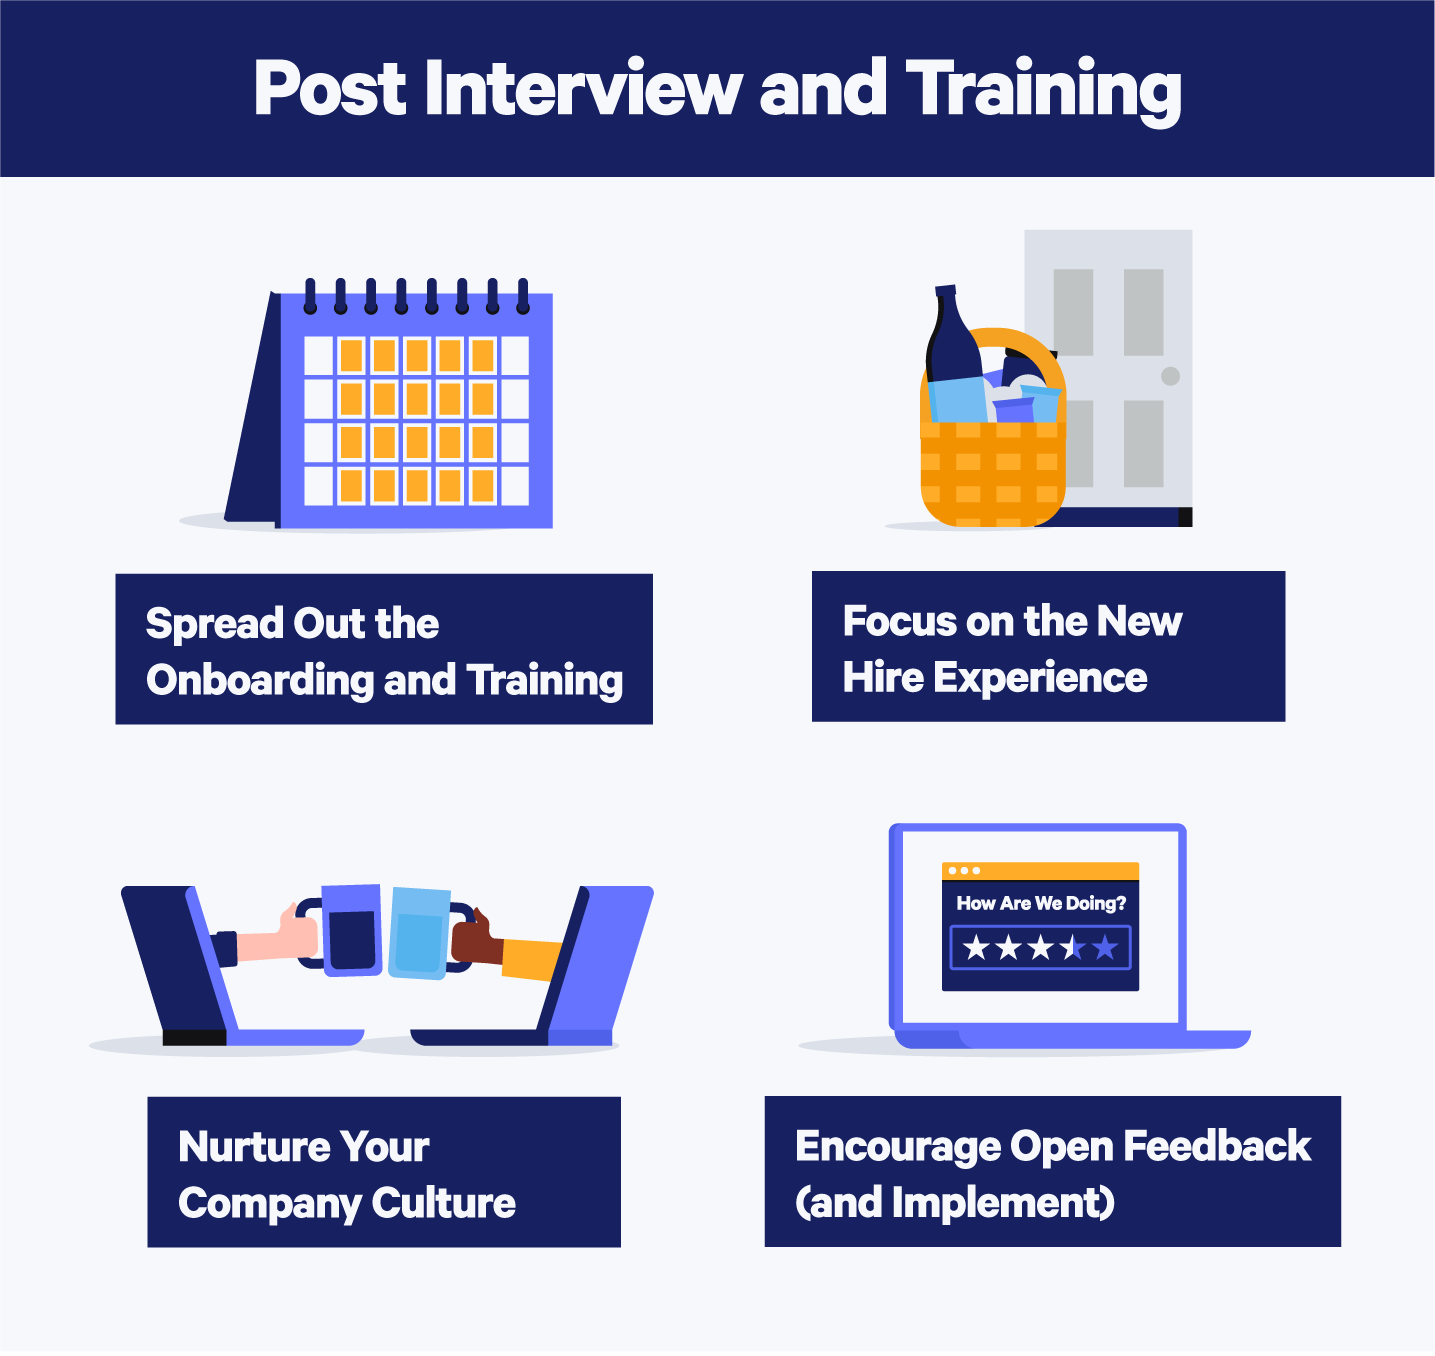 Post interview and training tips during covid 19